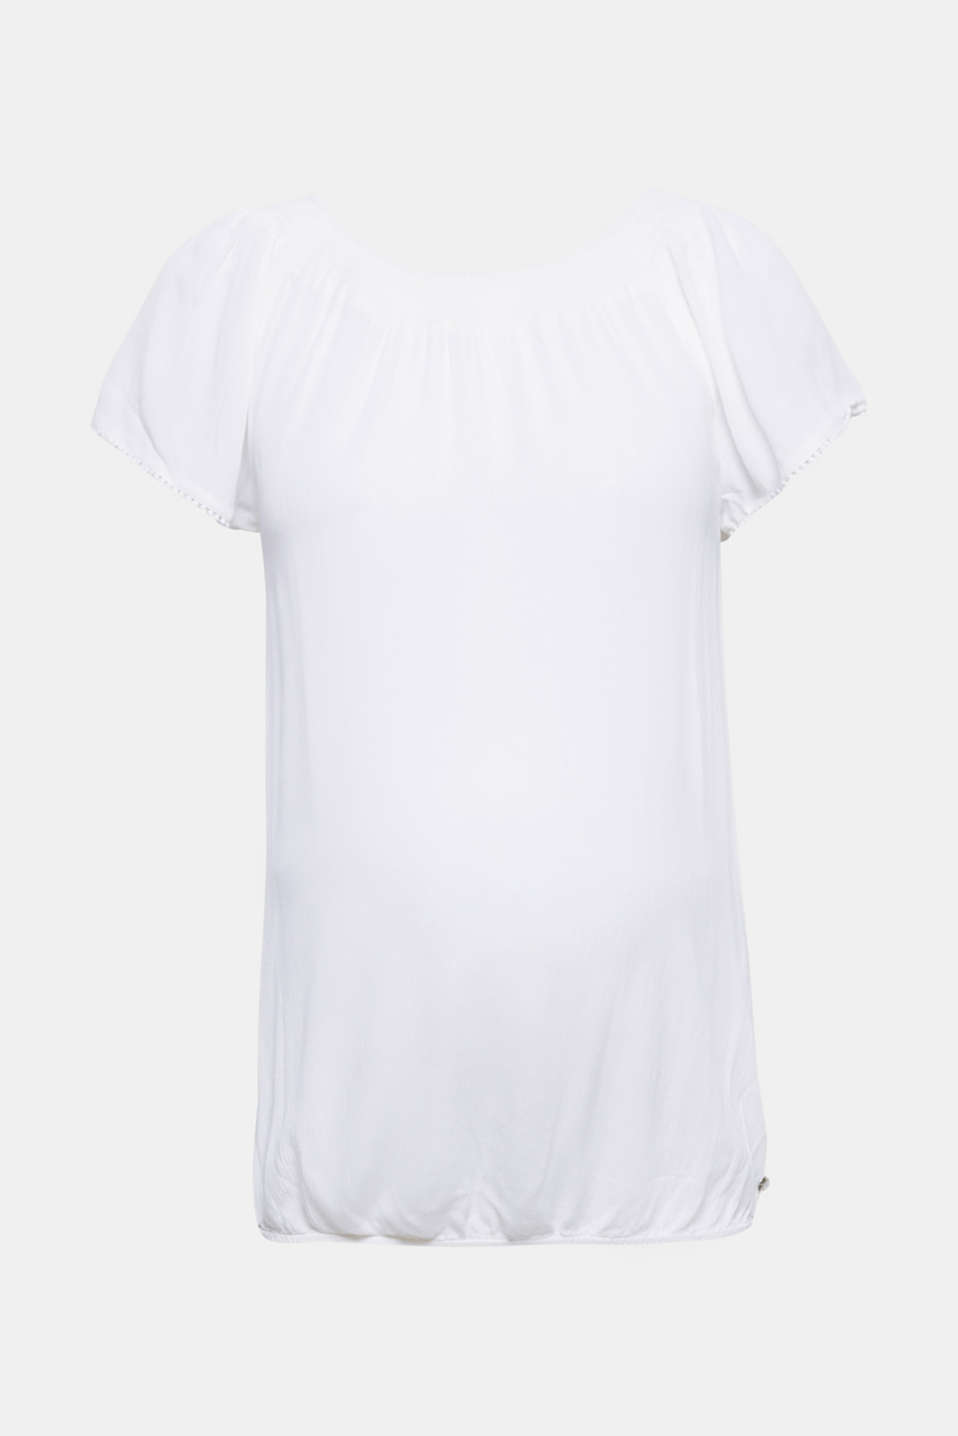 A loose and airy summer trend piece! This maternity blouse is shoulderless with a round neckline.